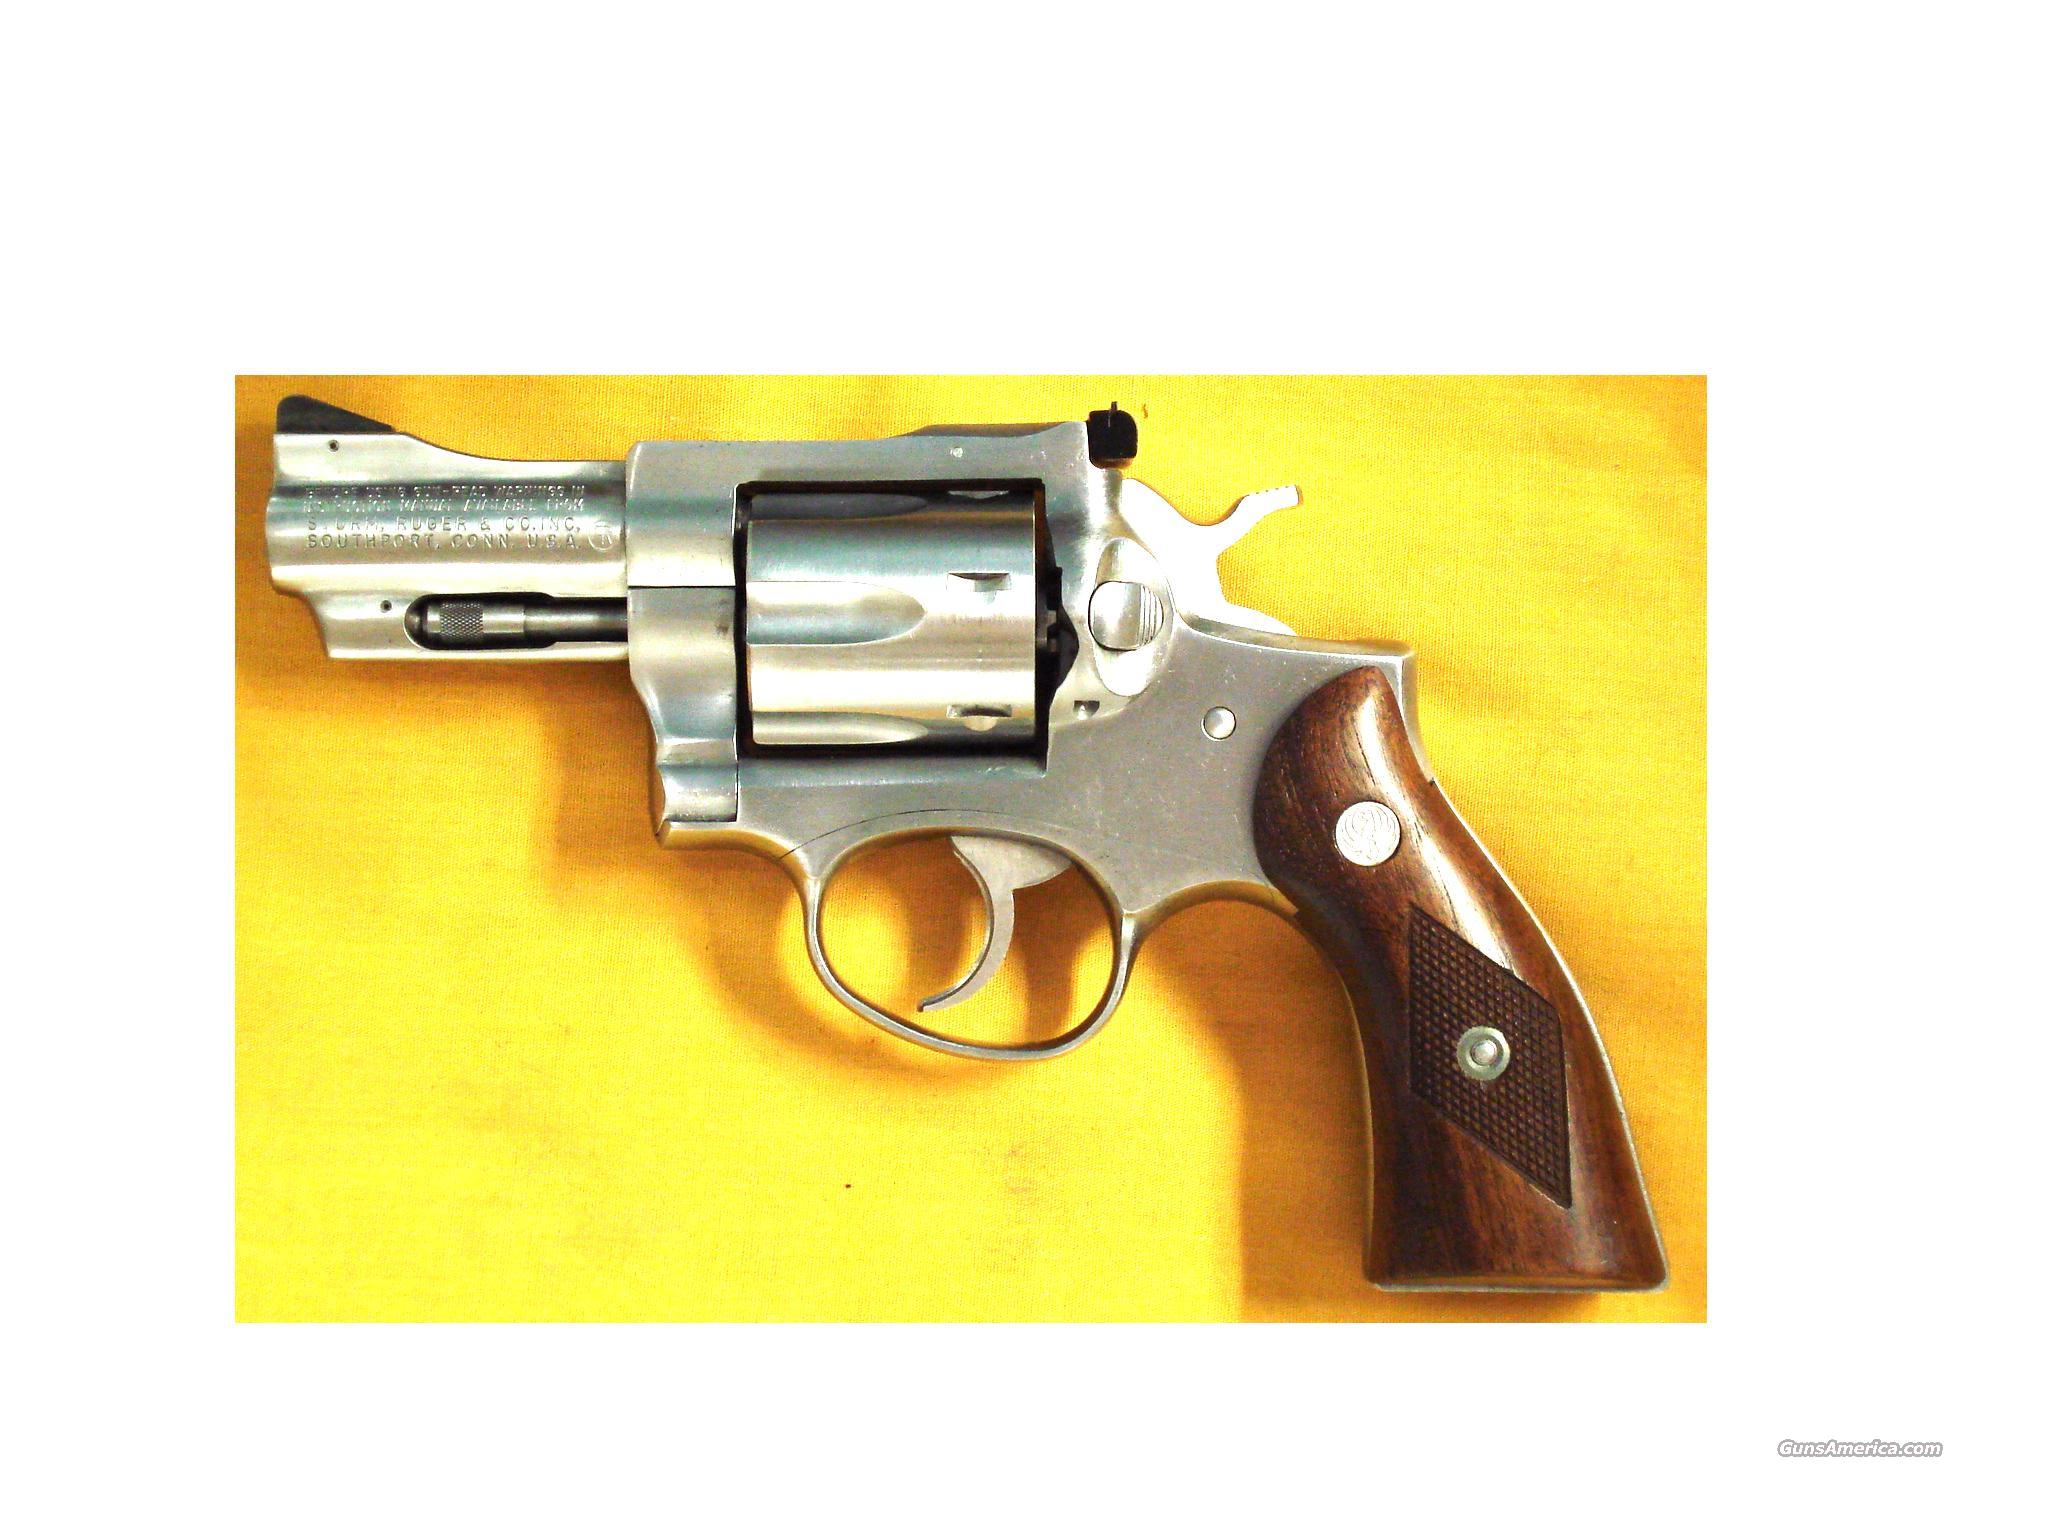 "RUGER SECURITY SIX .357MAG 2 1/2""BBL  Guns > Pistols > Ruger Double Action Revolver > Security Six Type"